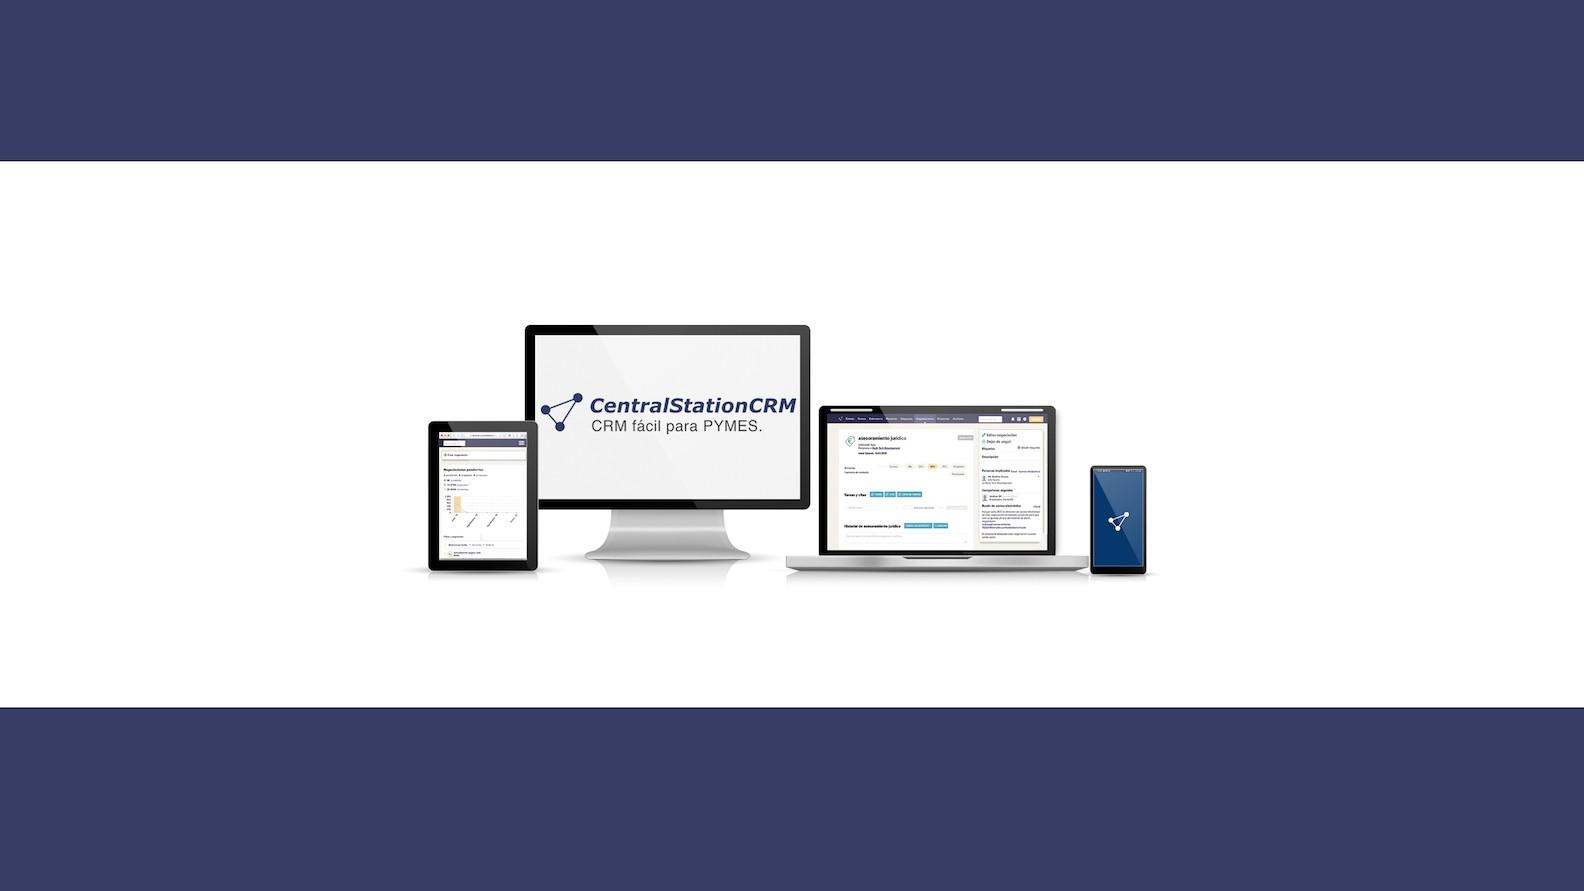 Review CentralStationCRM: The Simple CRM for Small Businesses - Appvizer